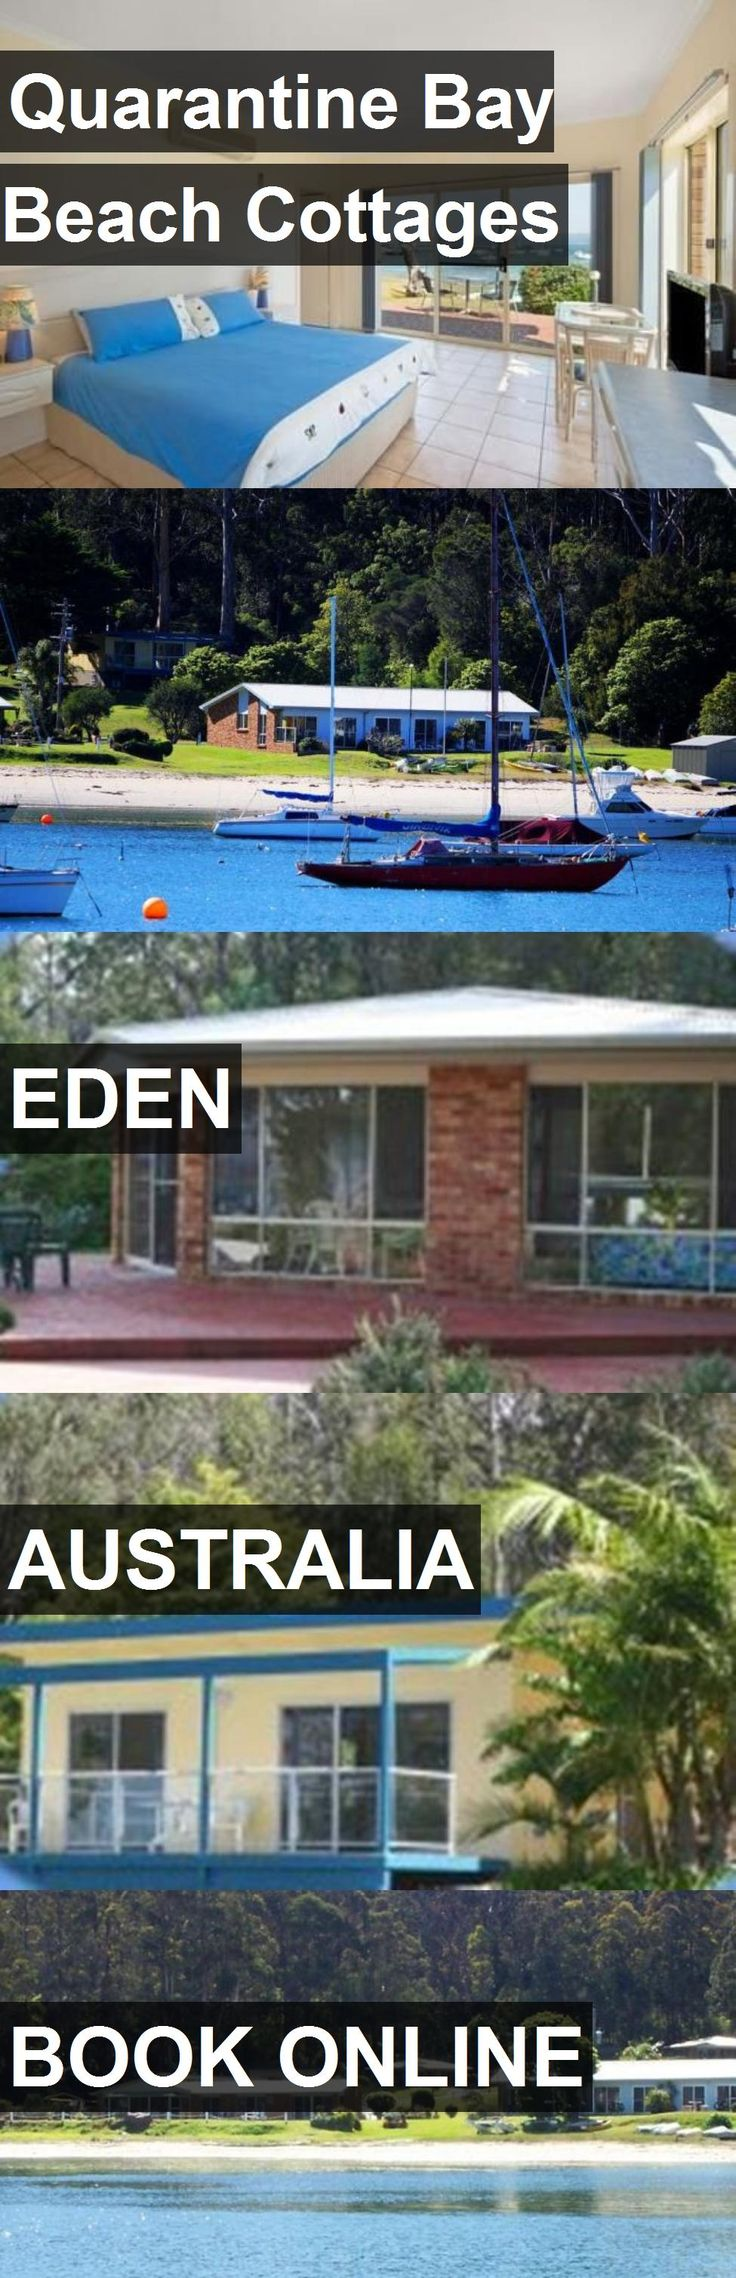 Hotel Quarantine Bay Beach Cottages in Eden, Australia. For more information, photos, reviews and best prices please follow the link. #Australia #Eden #hotel #travel #vacation